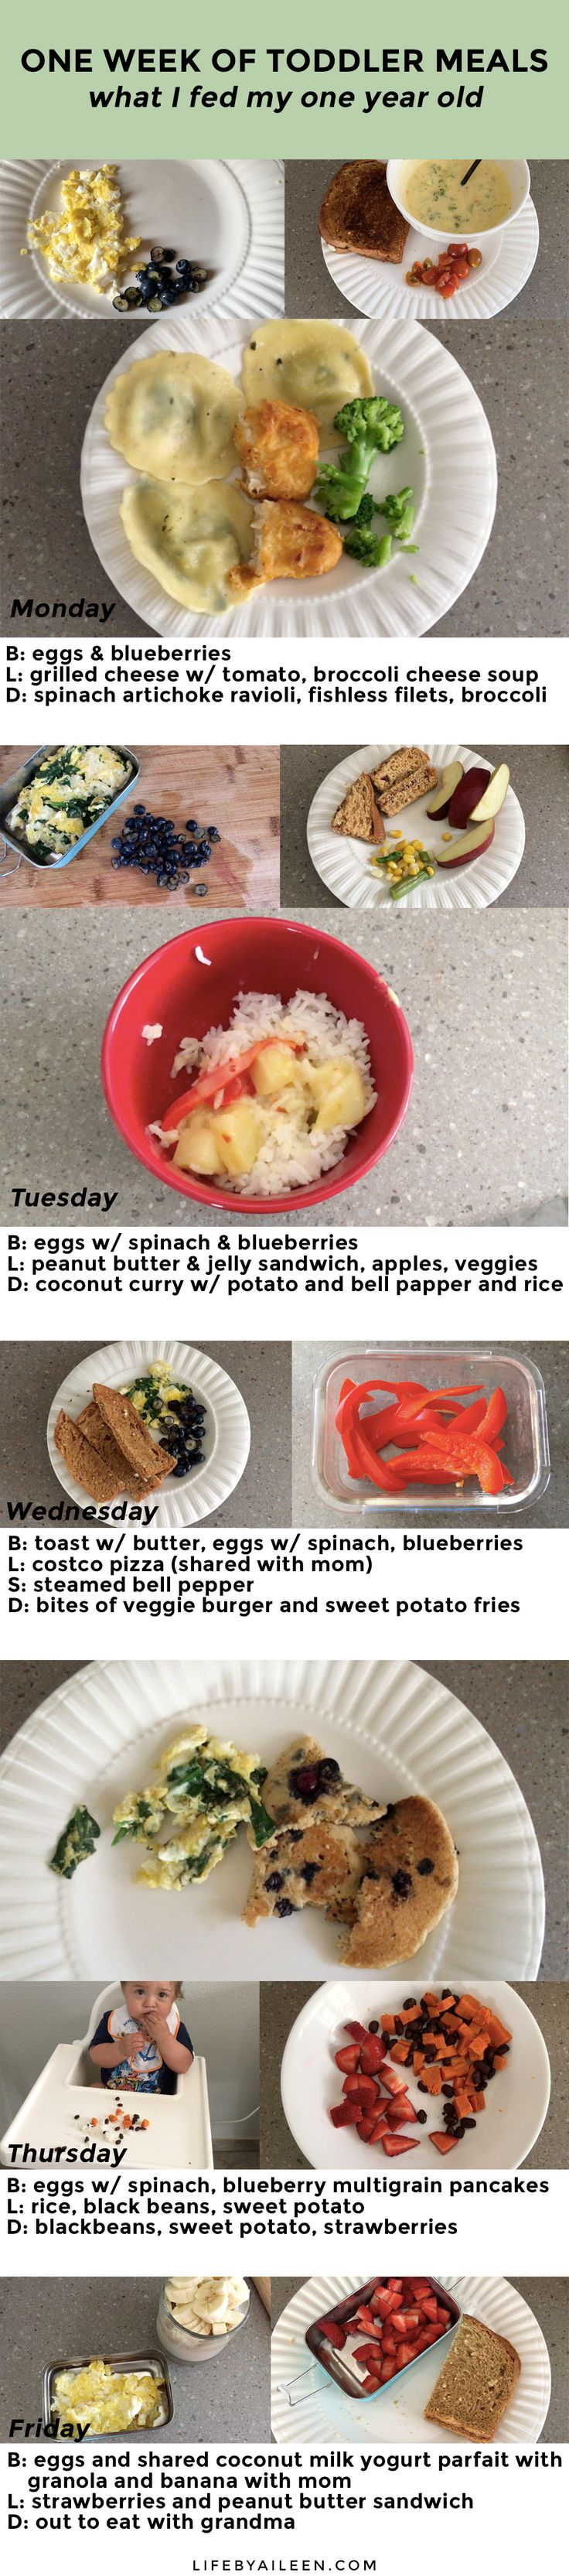 One Week of Toddler Meals - What I fed my 1 year old over the course of a week! Easy, healthy, vegetarian meals.